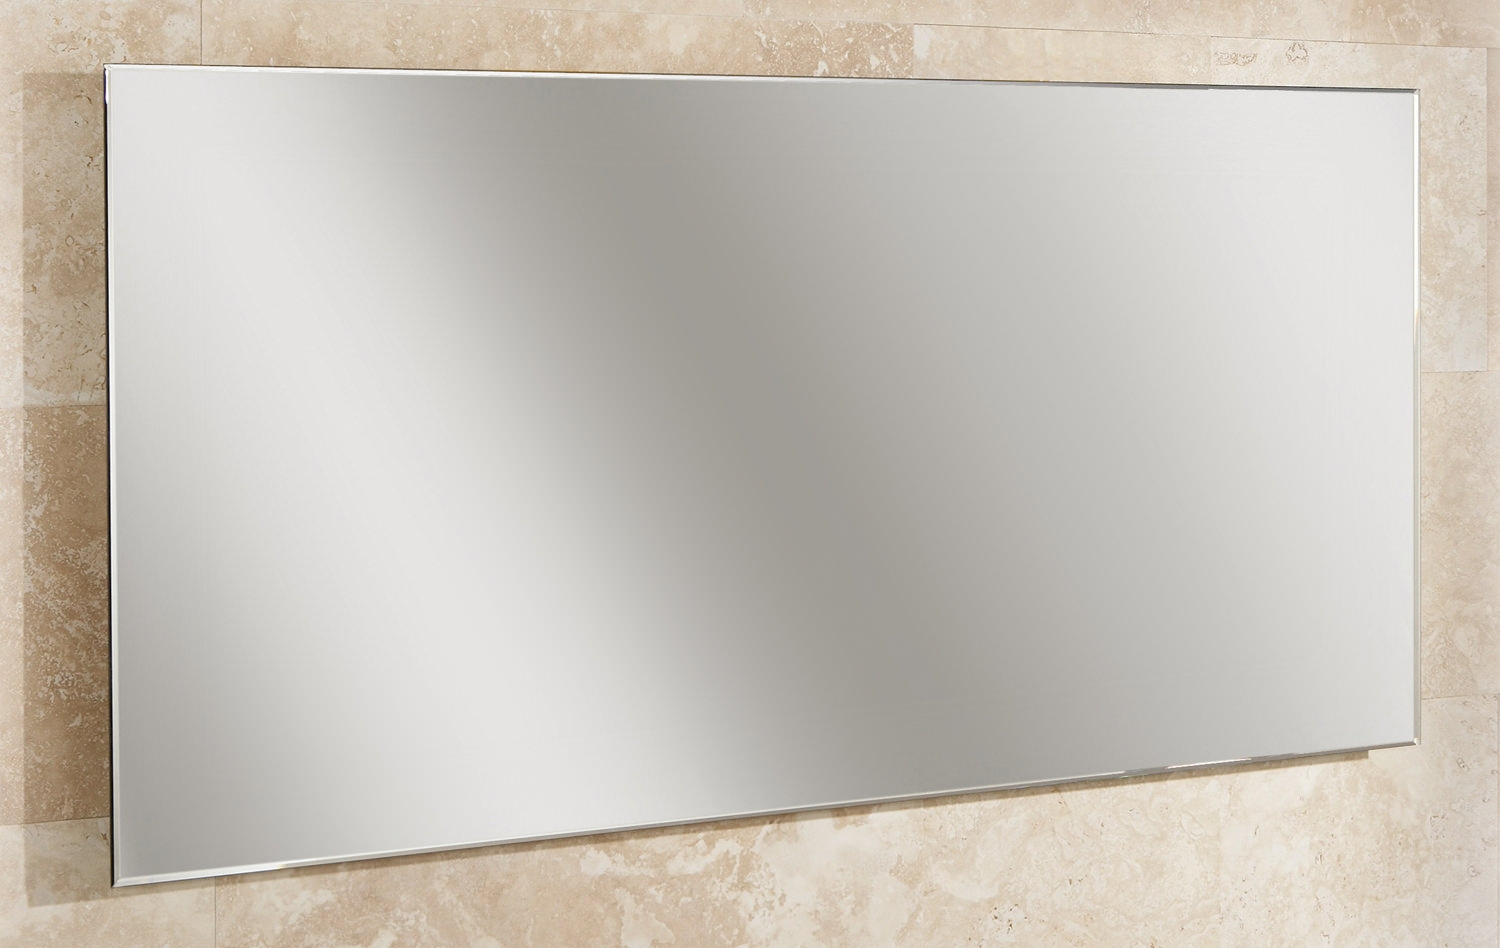 Hib Willow Landscape Bevelled Edge Mirror 1200 X 600mm 77305000 Intended For Bevelled Edge Mirrors (View 4 of 15)